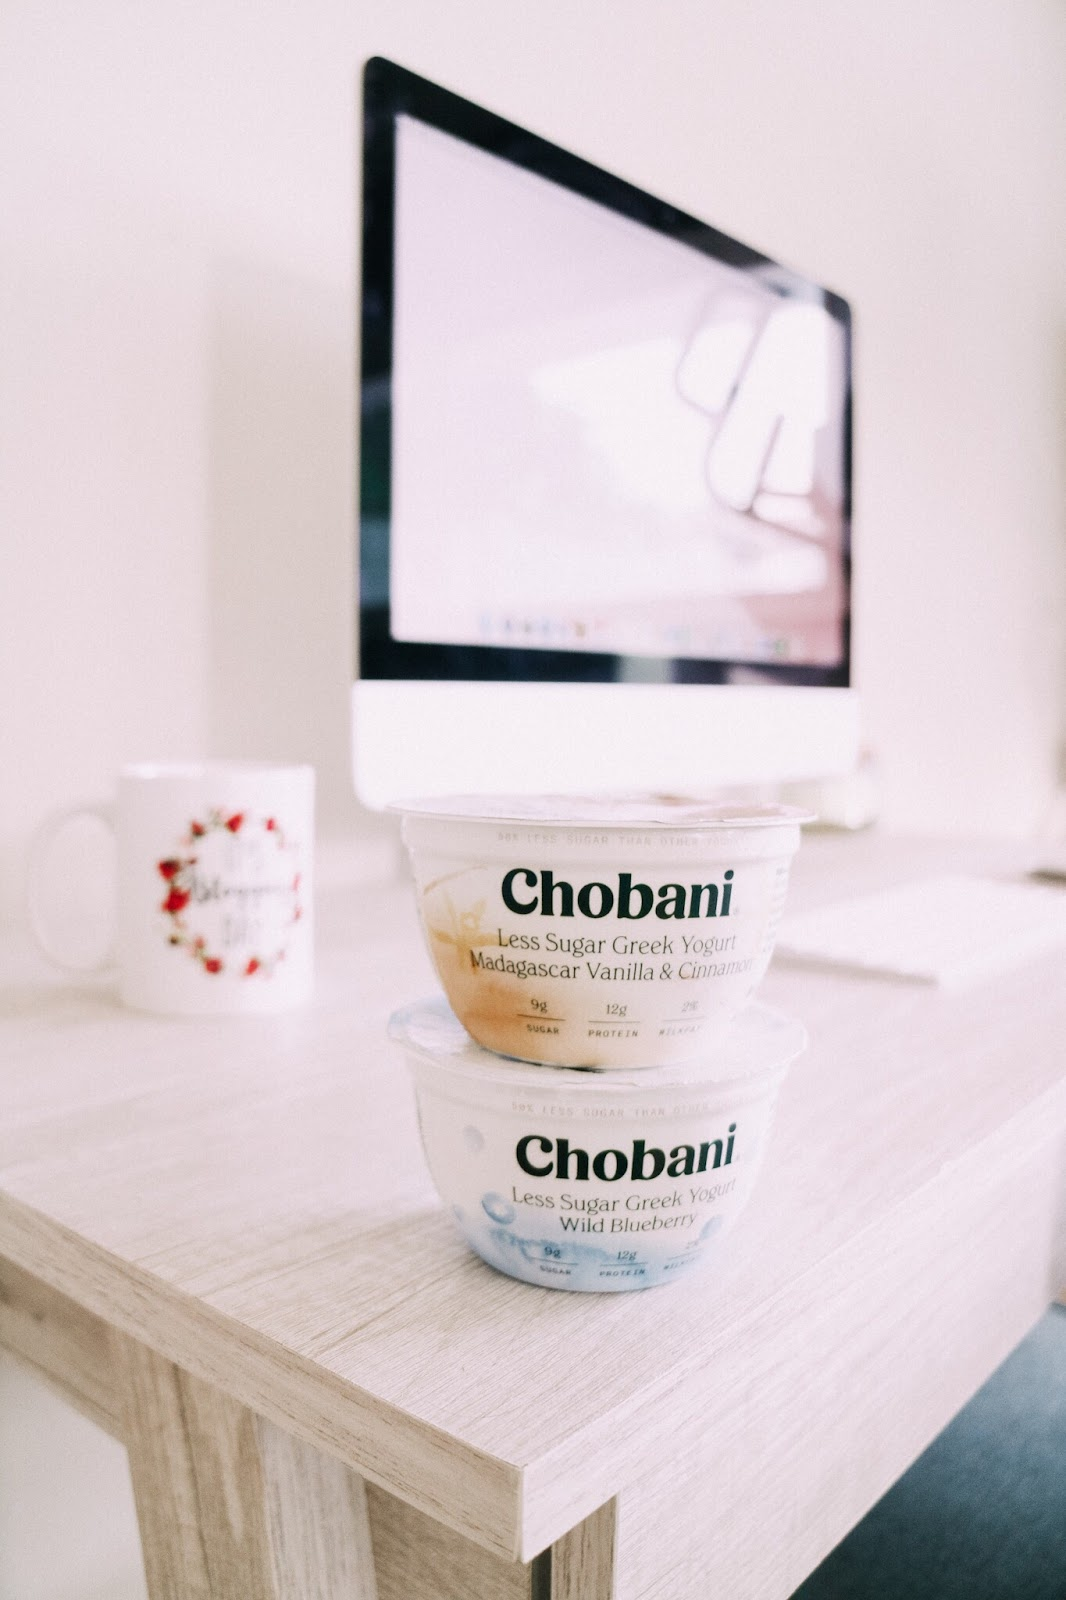 Chobani Less Sugar Greek Yogurt in Tampa blogger's home office